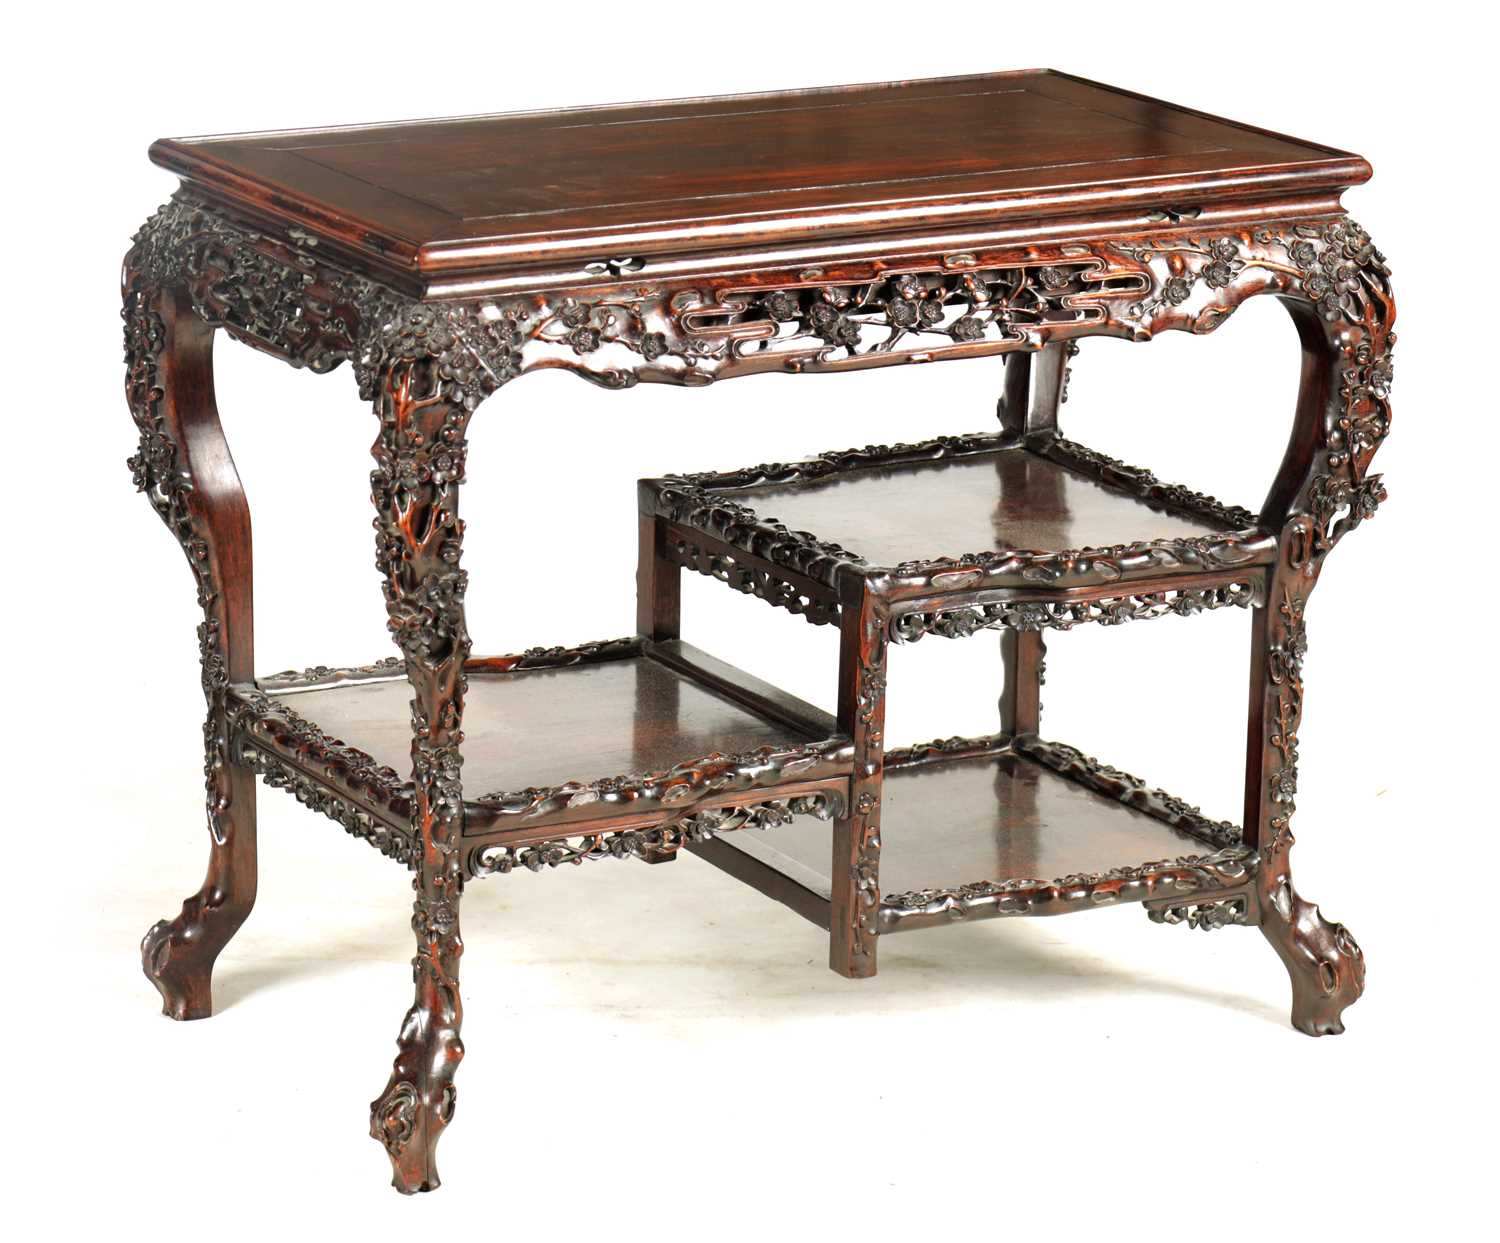 Lot 480 - A FINE 19TH CENTURY CHINESE CARVED HARDWOOD...